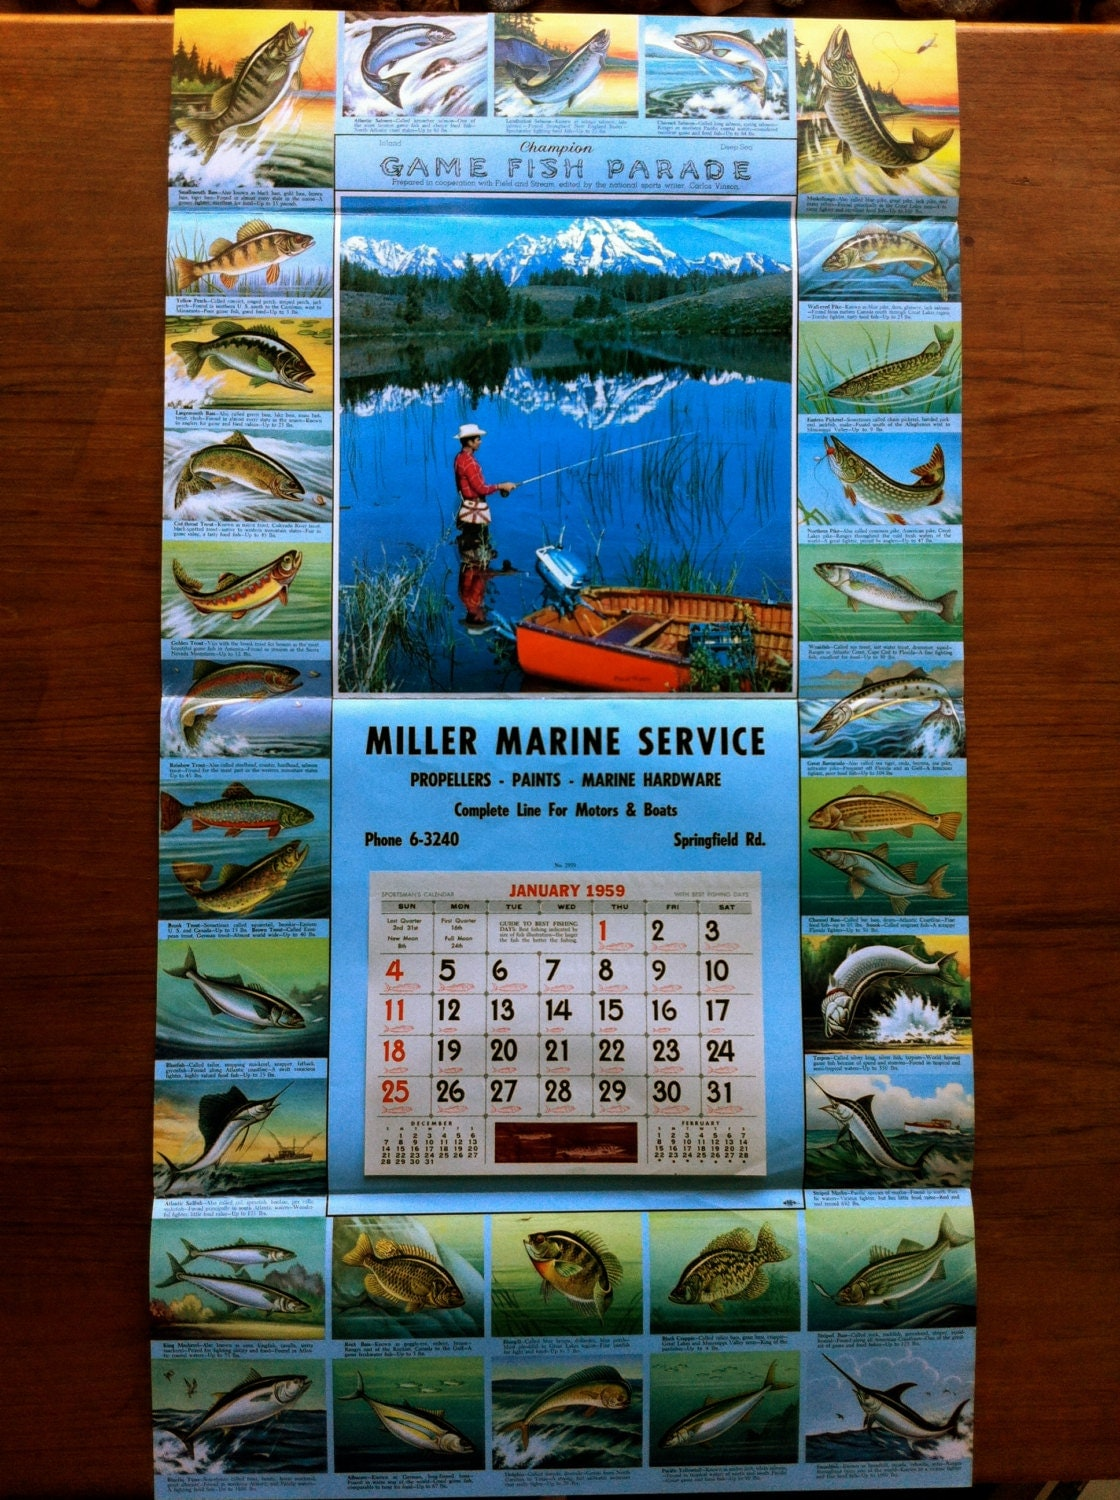 Vintage champion game fish parade sportsman 39 s calendar for Illinois game and fish